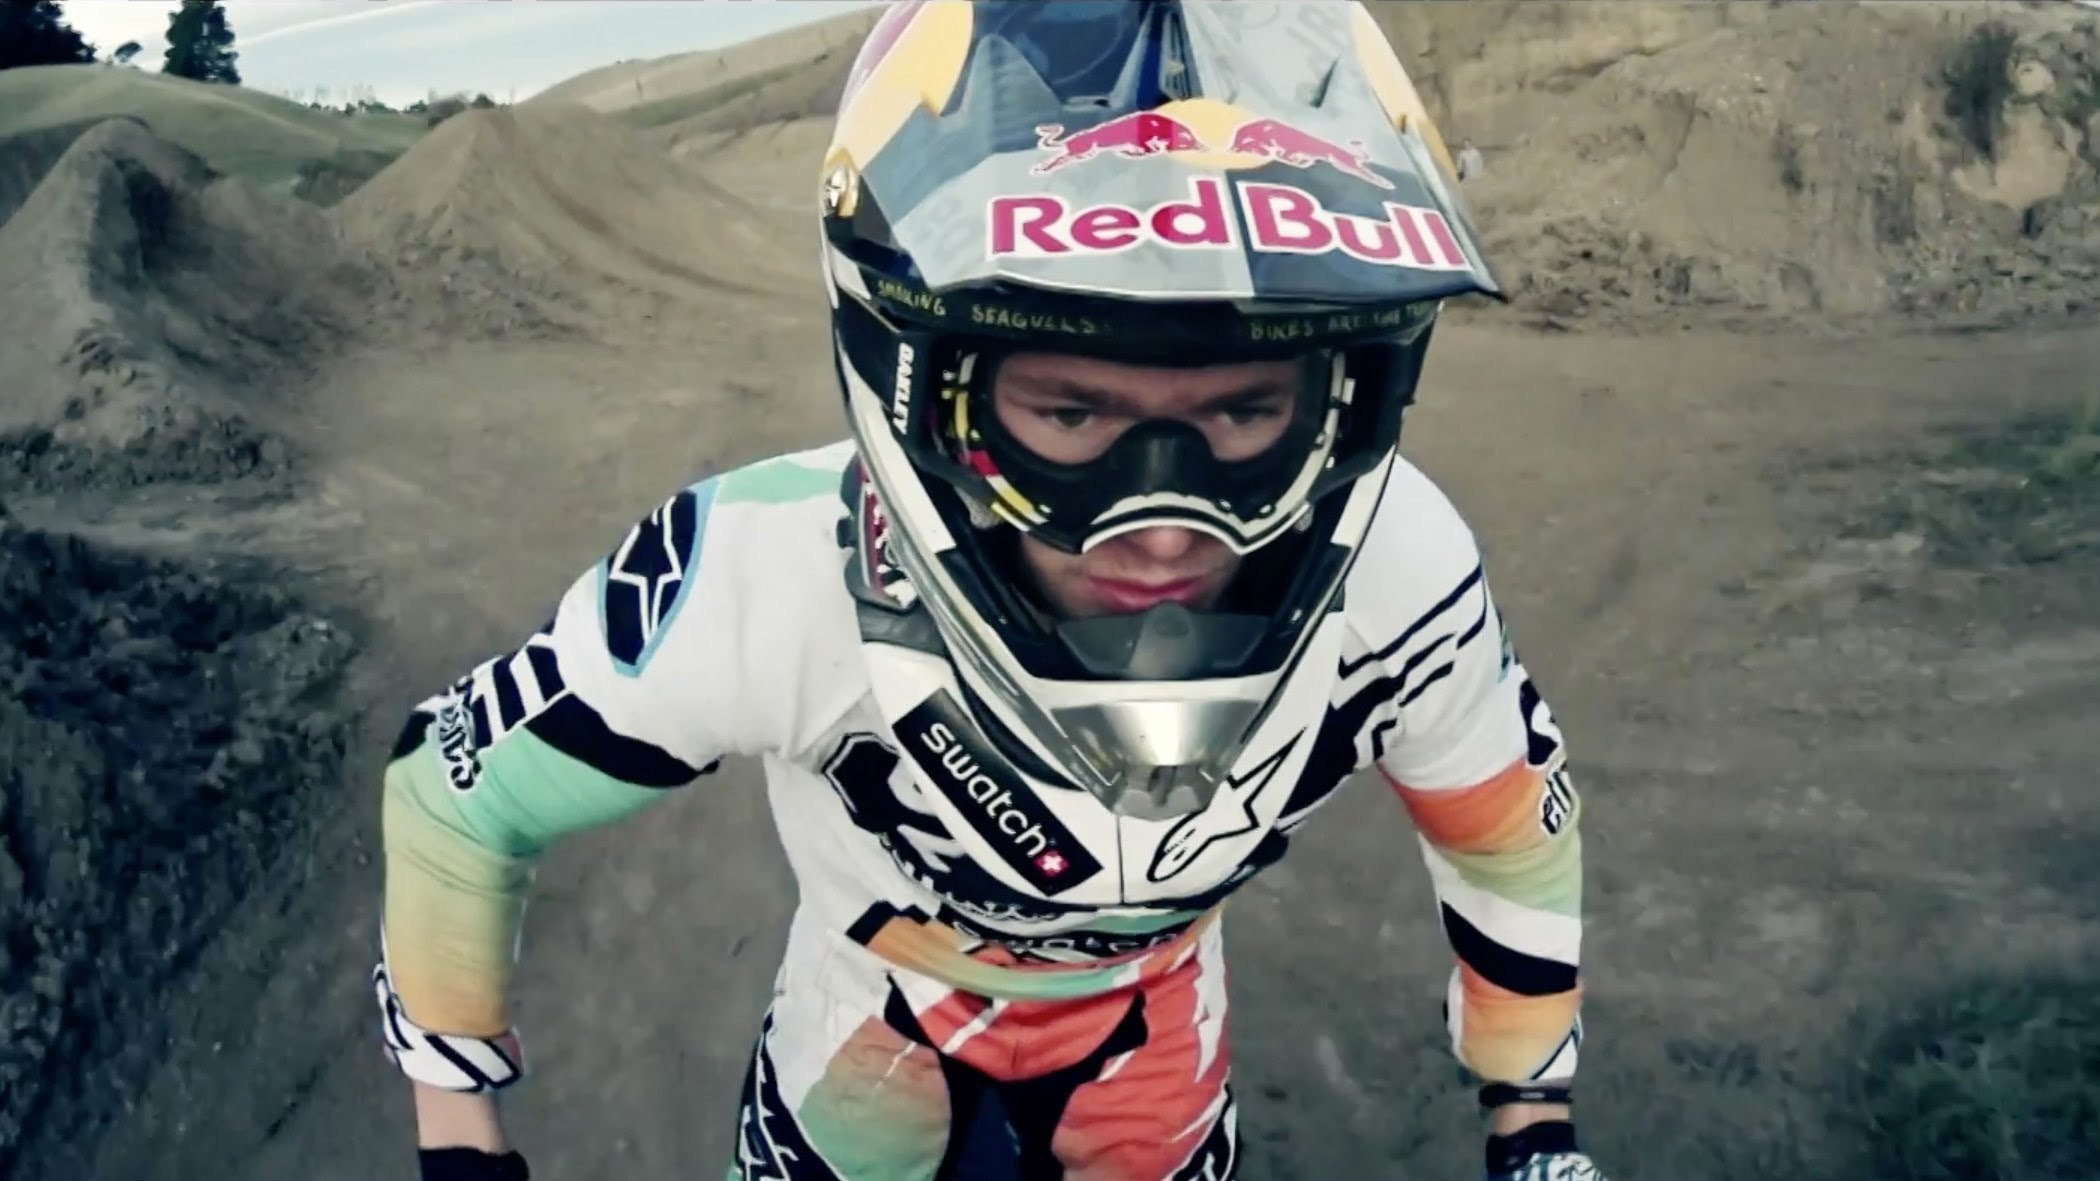 Levi Sherwood - Freestyle Stunts in New Zealand